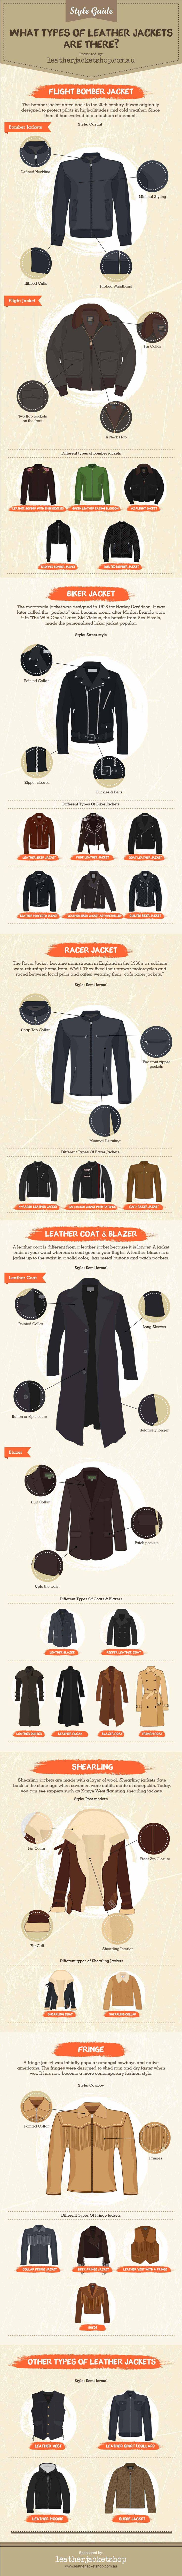 What Types of Leather Jackets Are There? #Infographic #Infografía